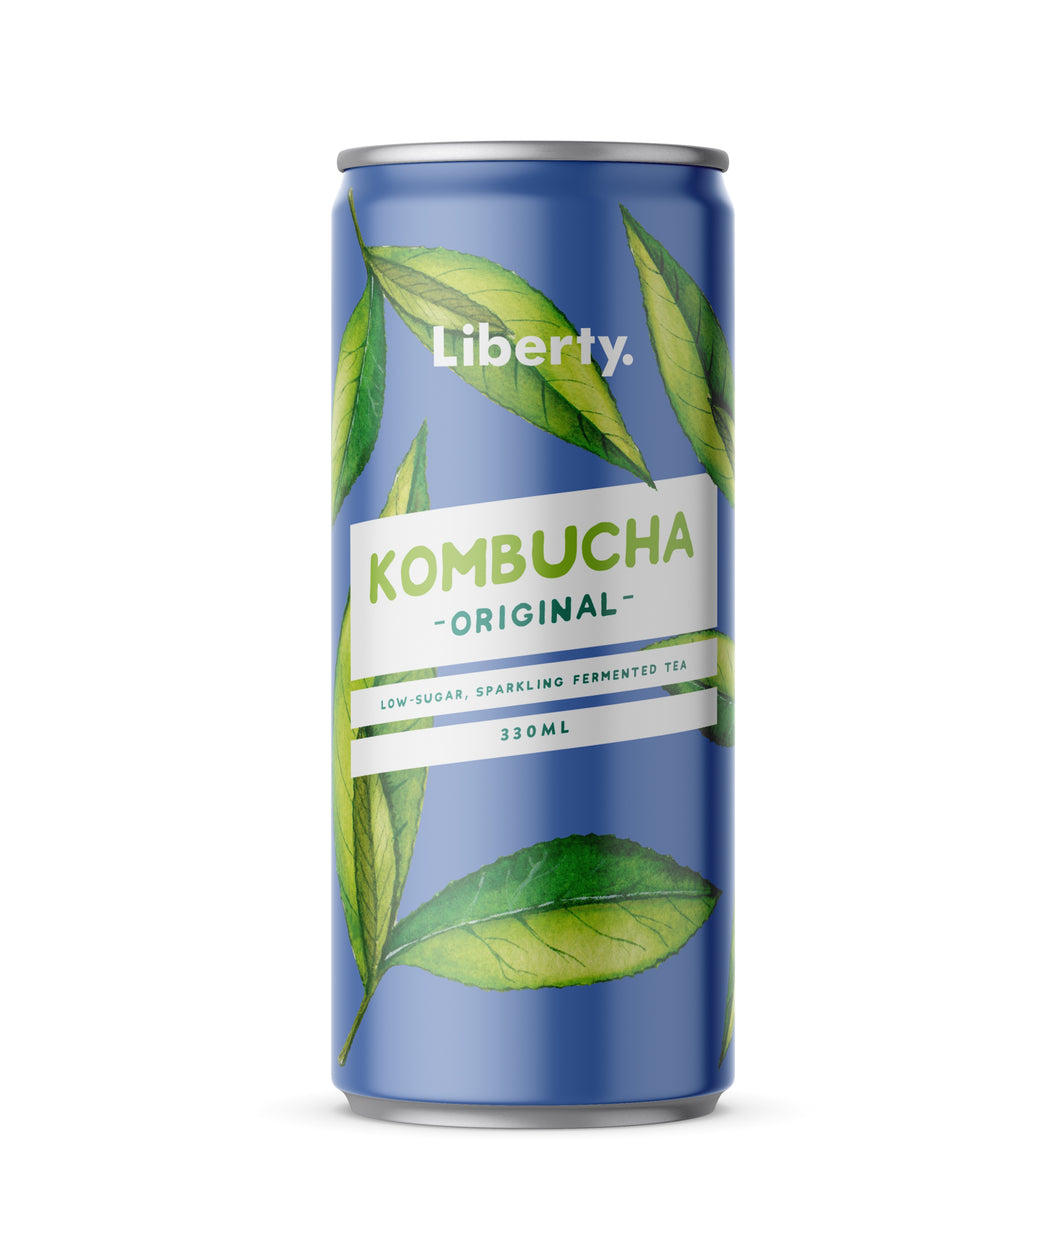 Liberty Kombucha Original Case (12 x 330ml cans)